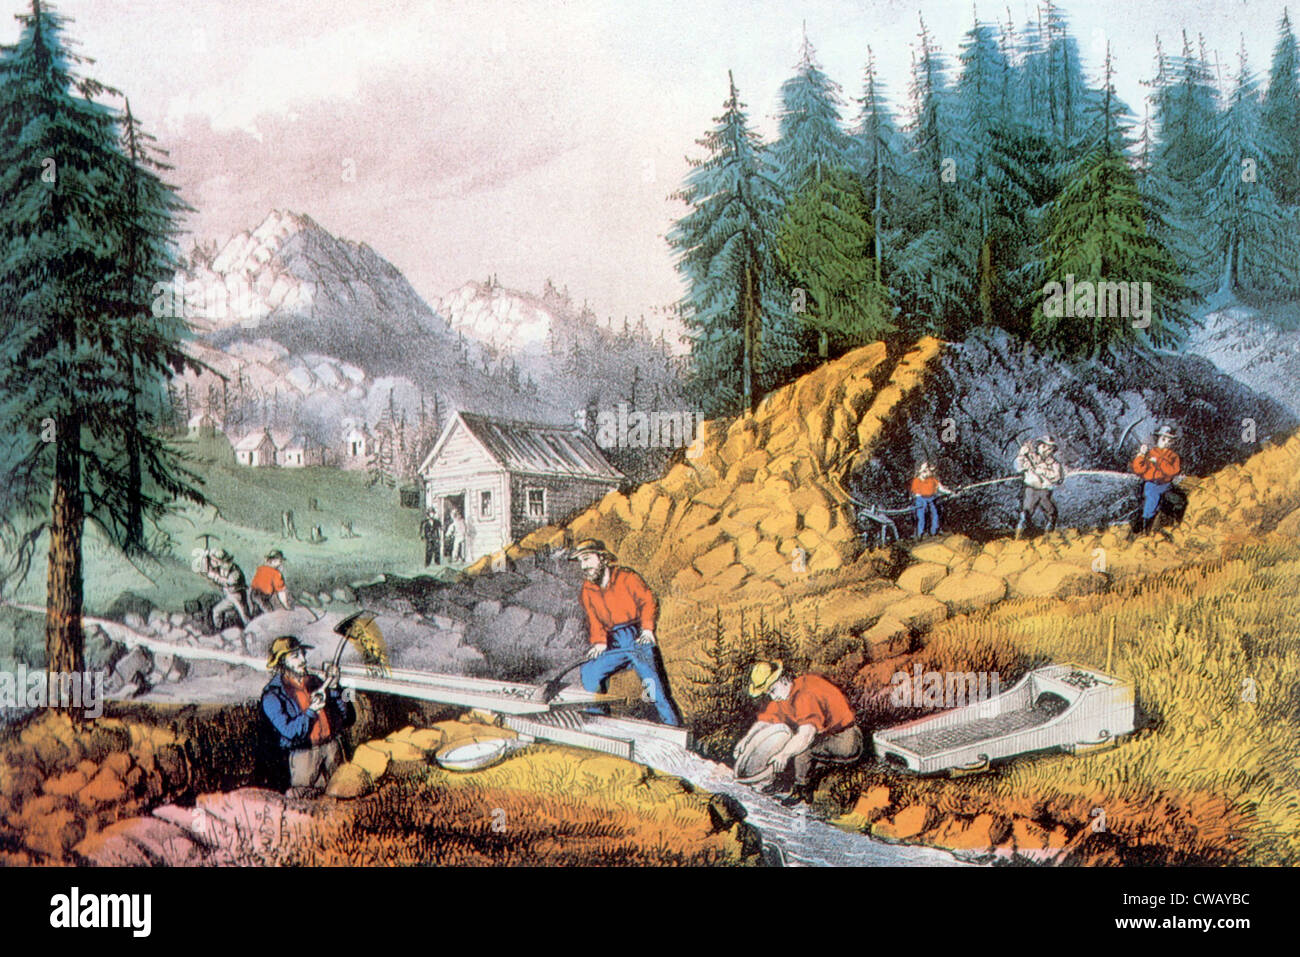 The Gold Rush, gold mining in California, ca. 1849, lithograph by Currier & Ives, 1871 - Stock Image